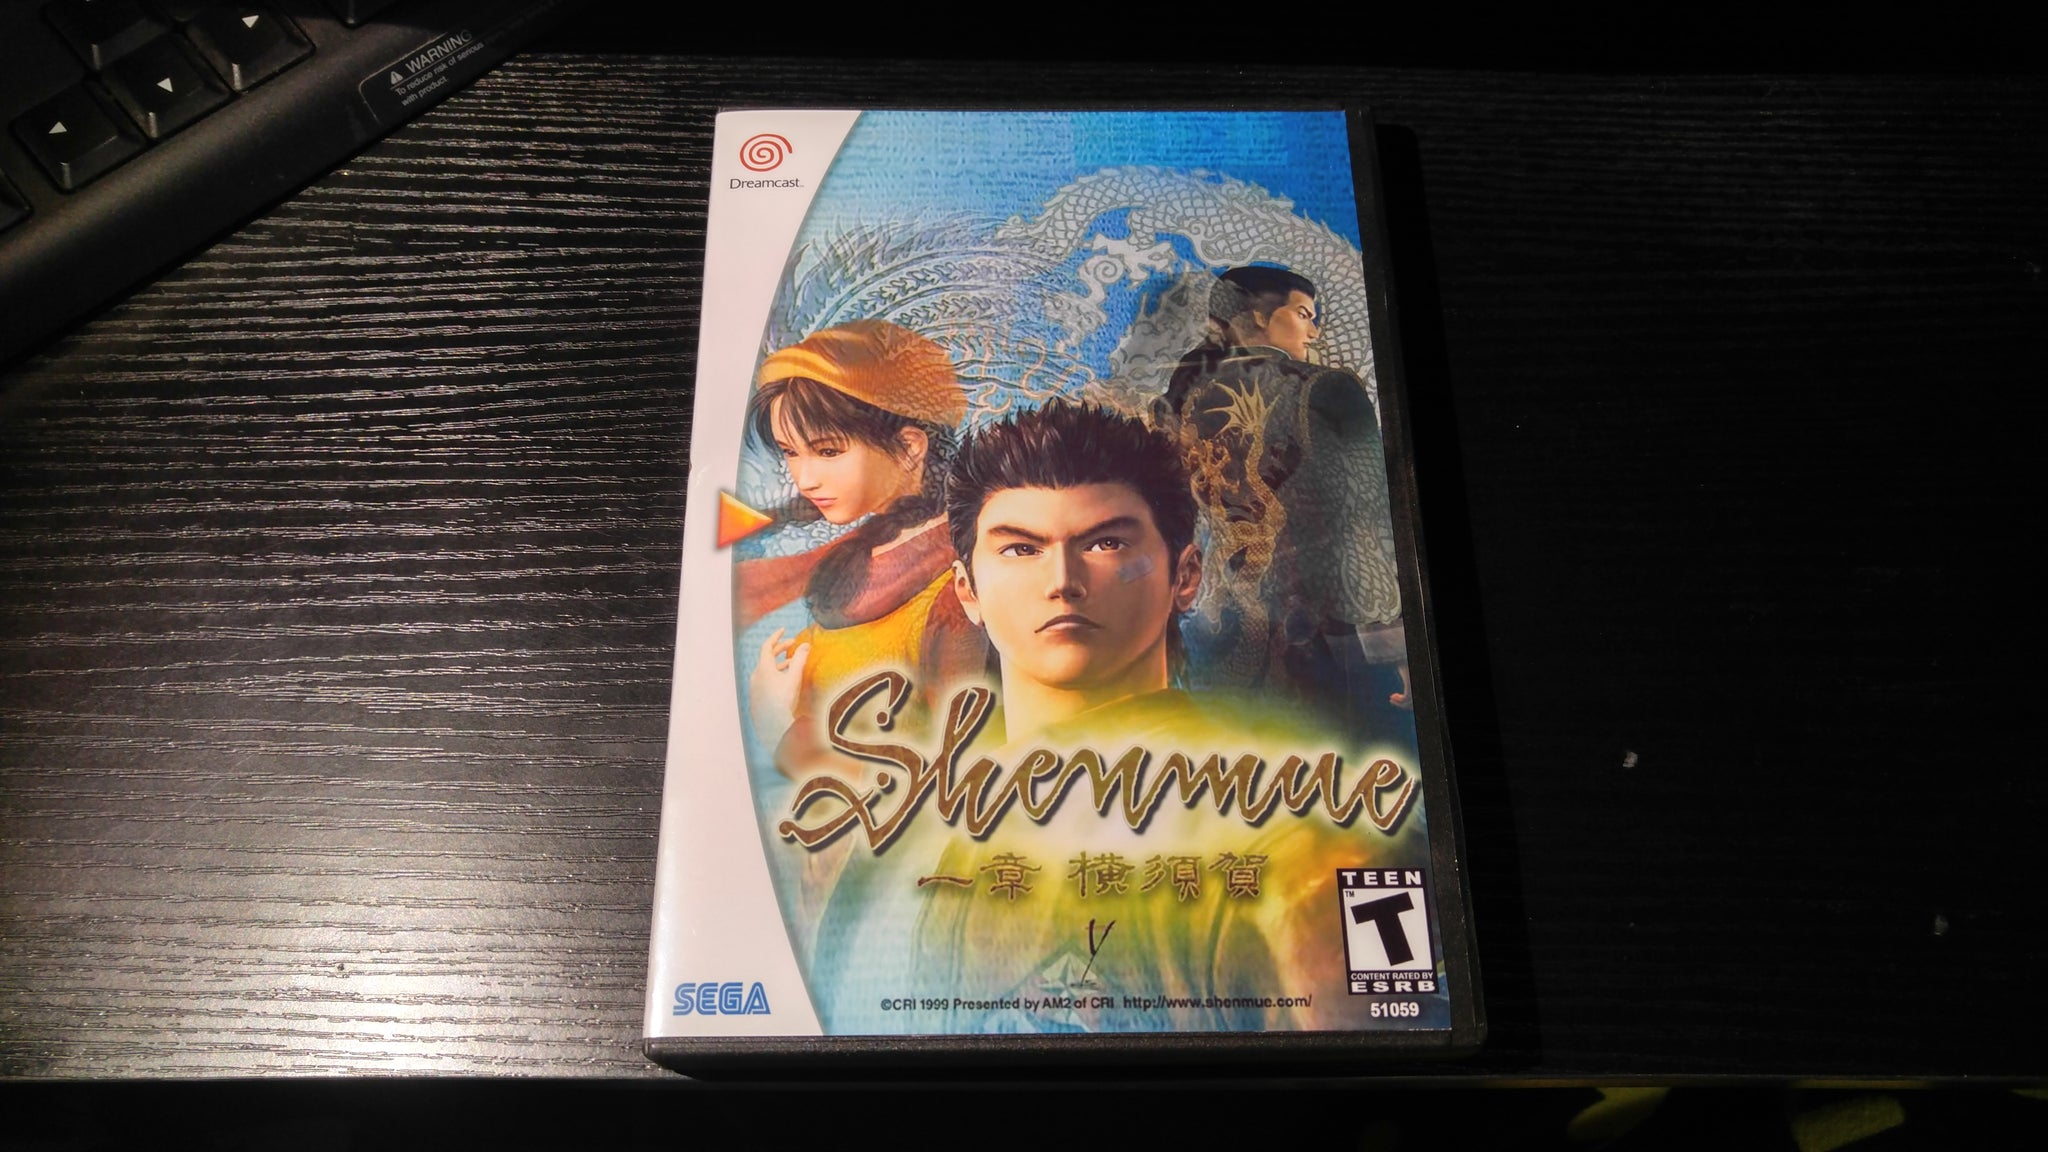 Shenmue Sega Dreamcast reproduction